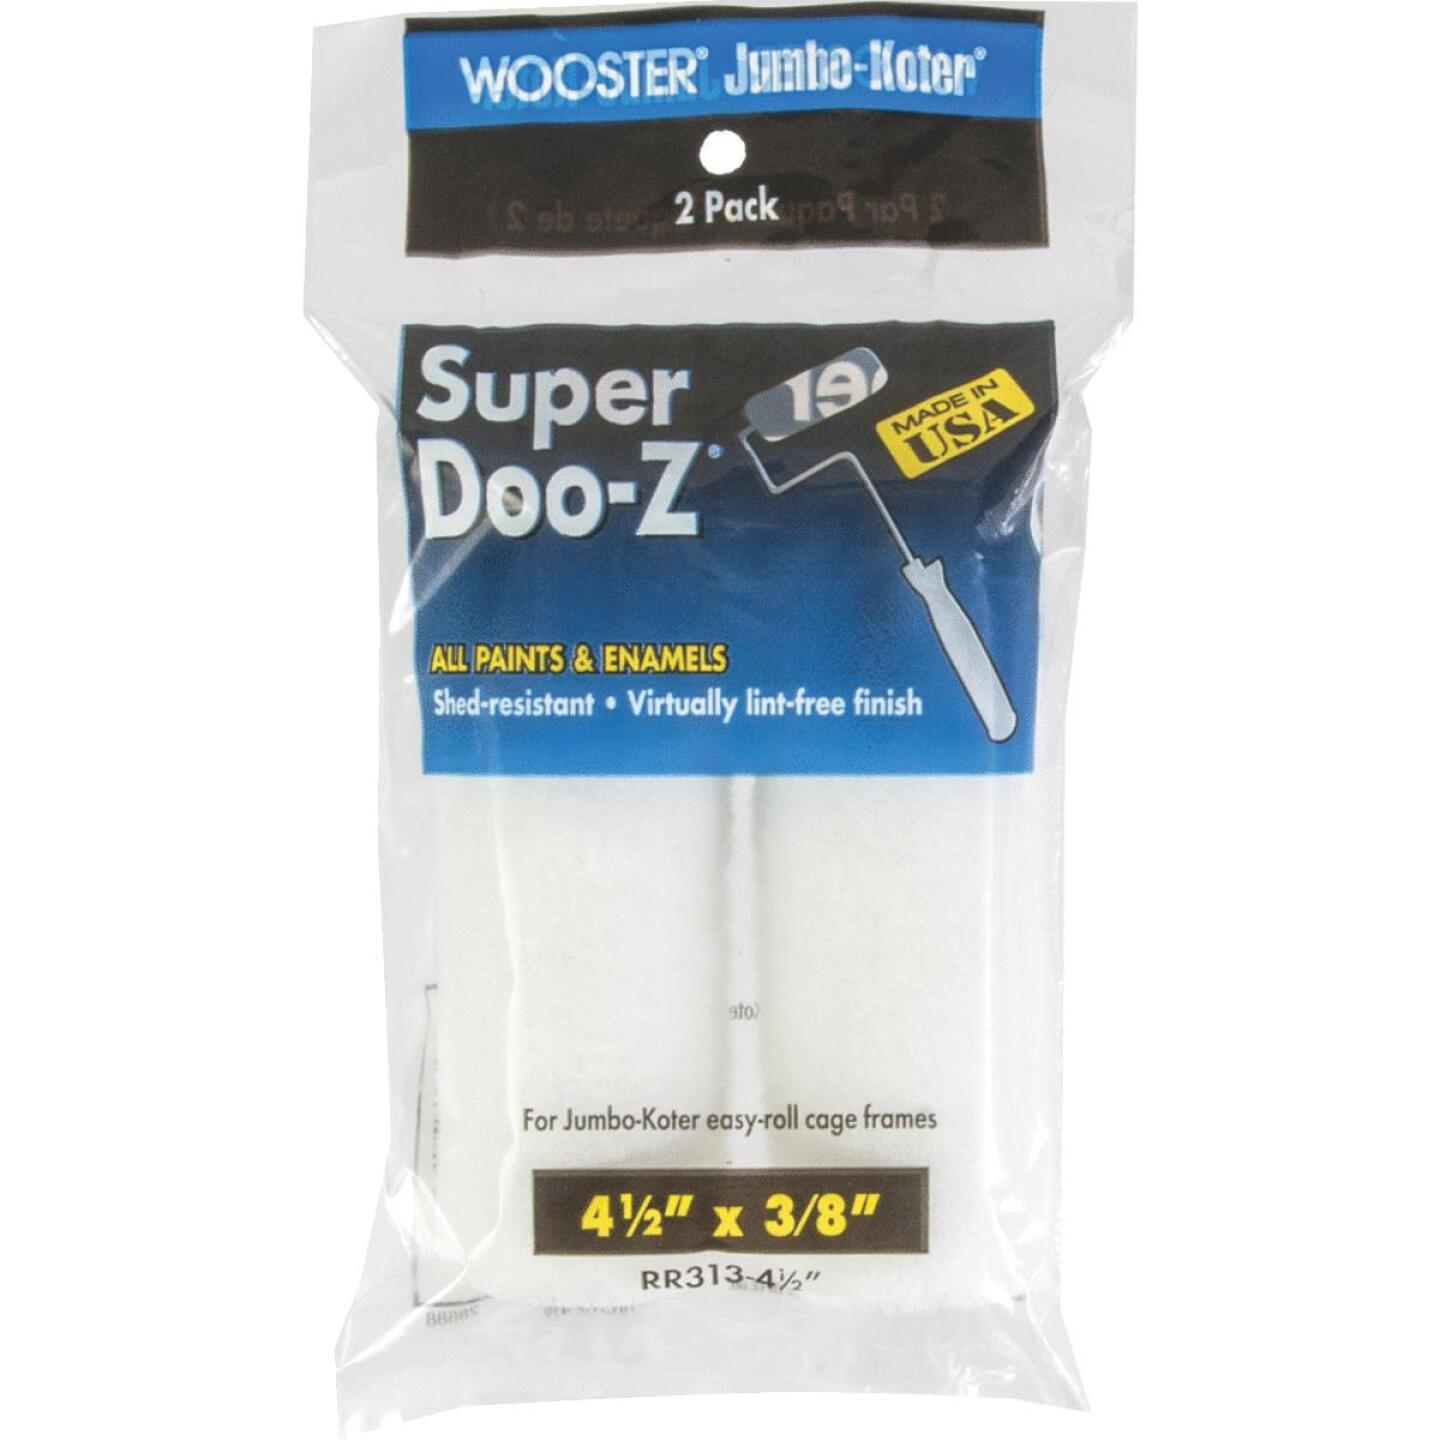 Wooster Jumbo-Koter Super Doo-Z 4-1/2 In. x 3/8 In. Mini Woven Fabric Roller Cover (2-Pack) Image 1